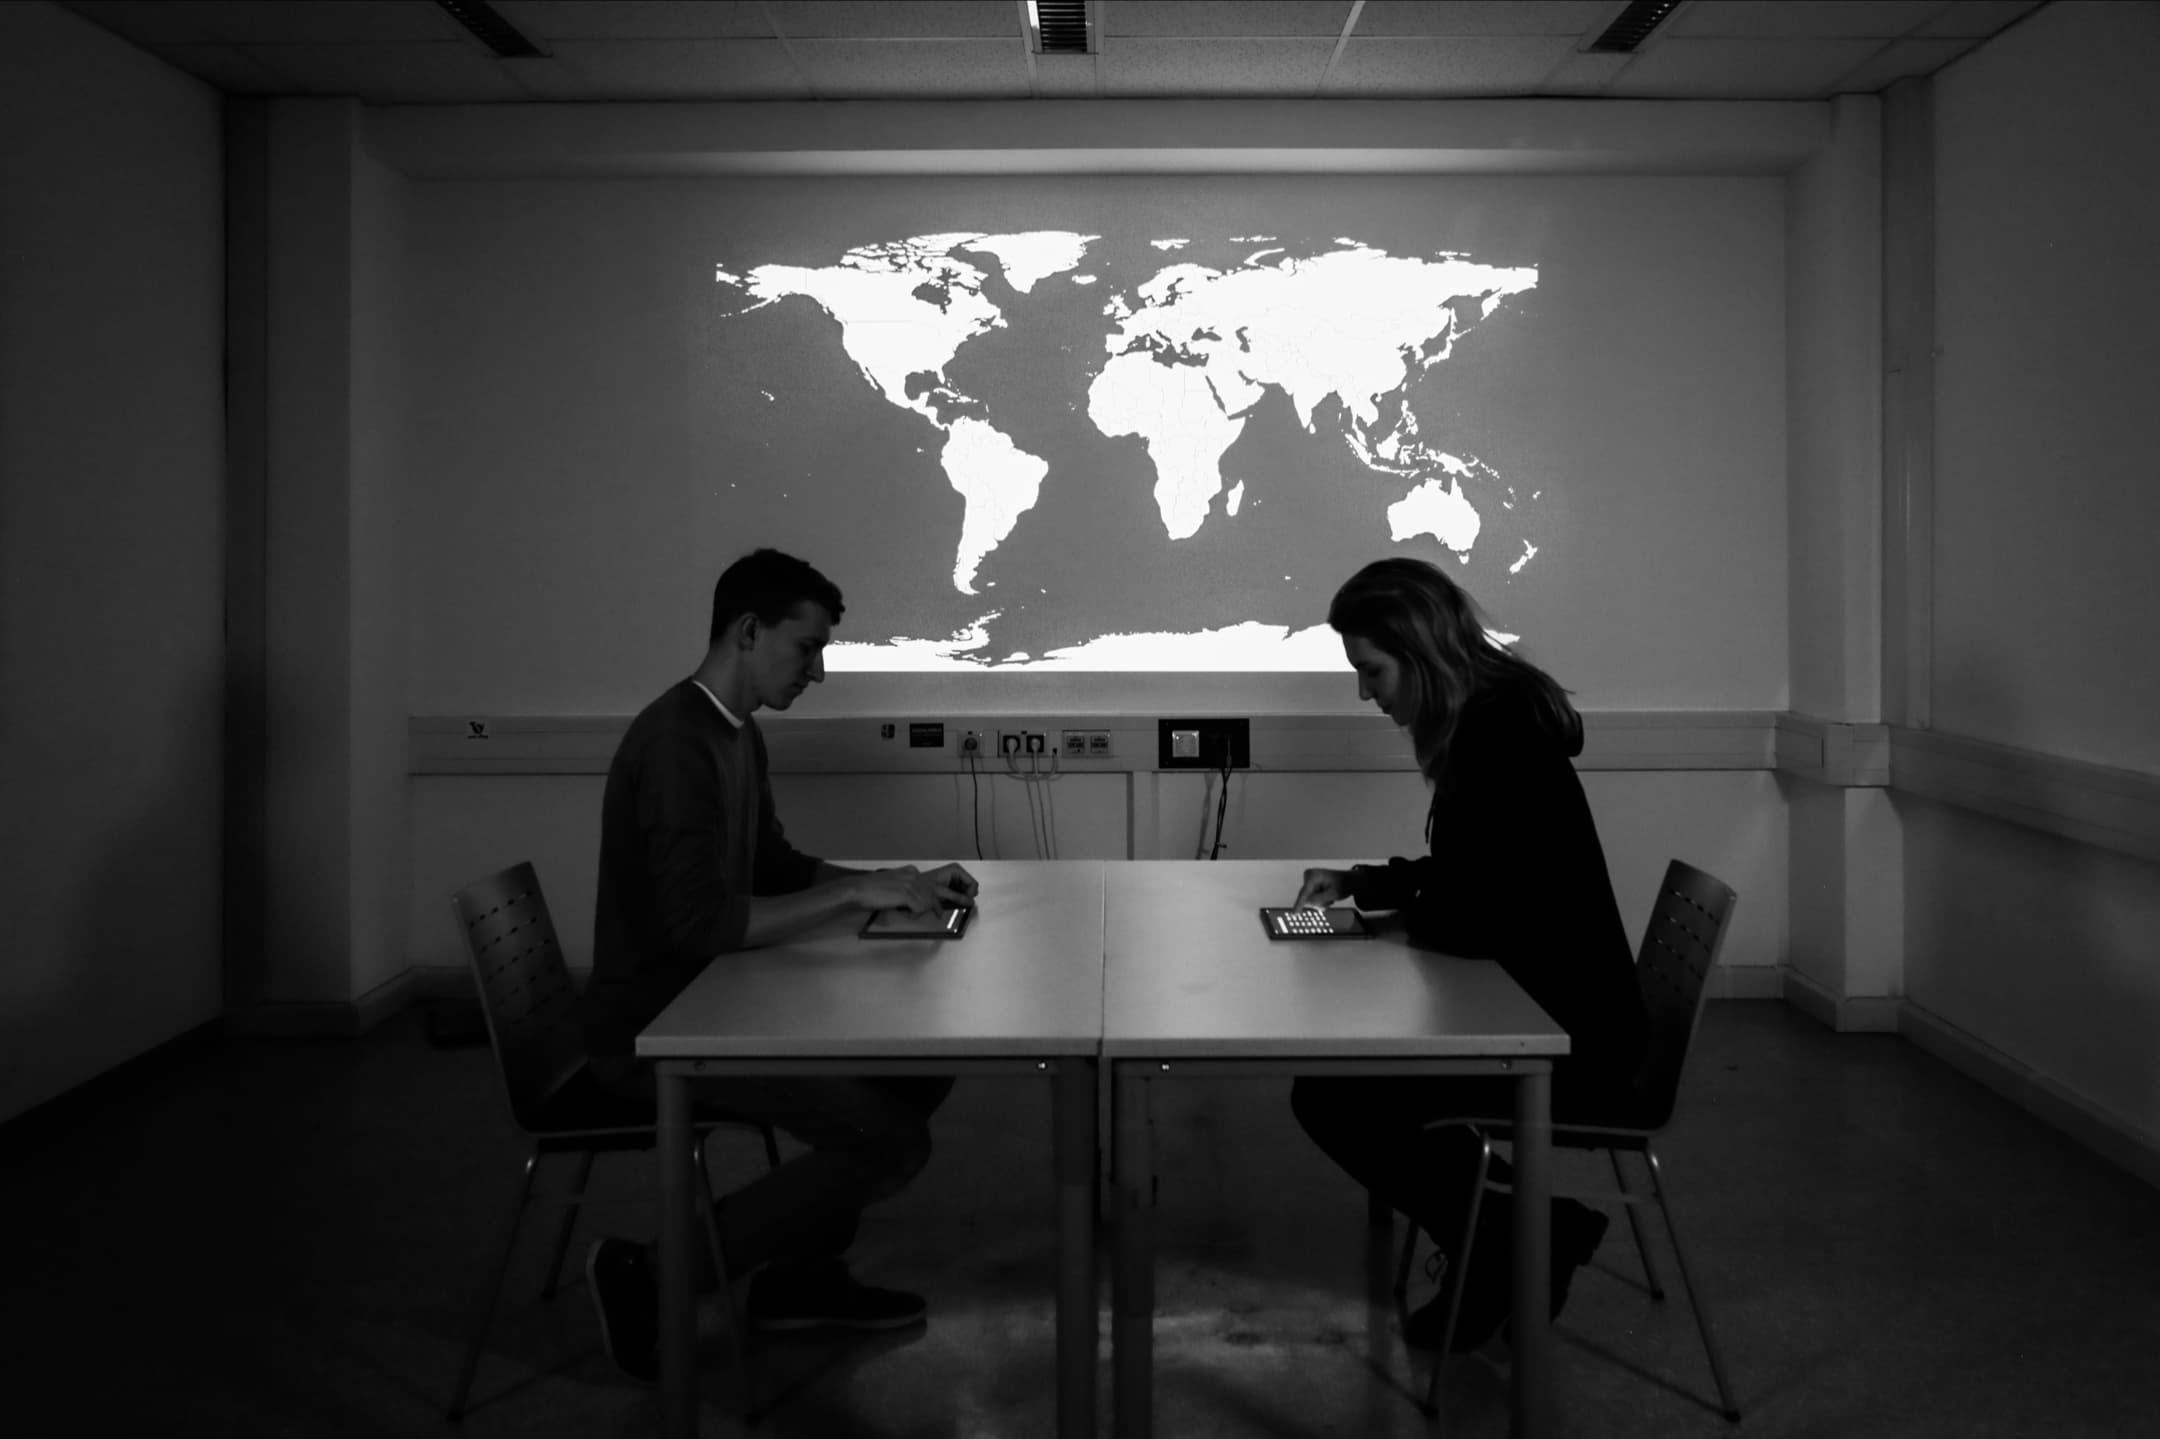 Two people sitting across from each other at a table in a dark room. On the table is a tablet in front of each person. A large world map is projected on the wall next to the table.